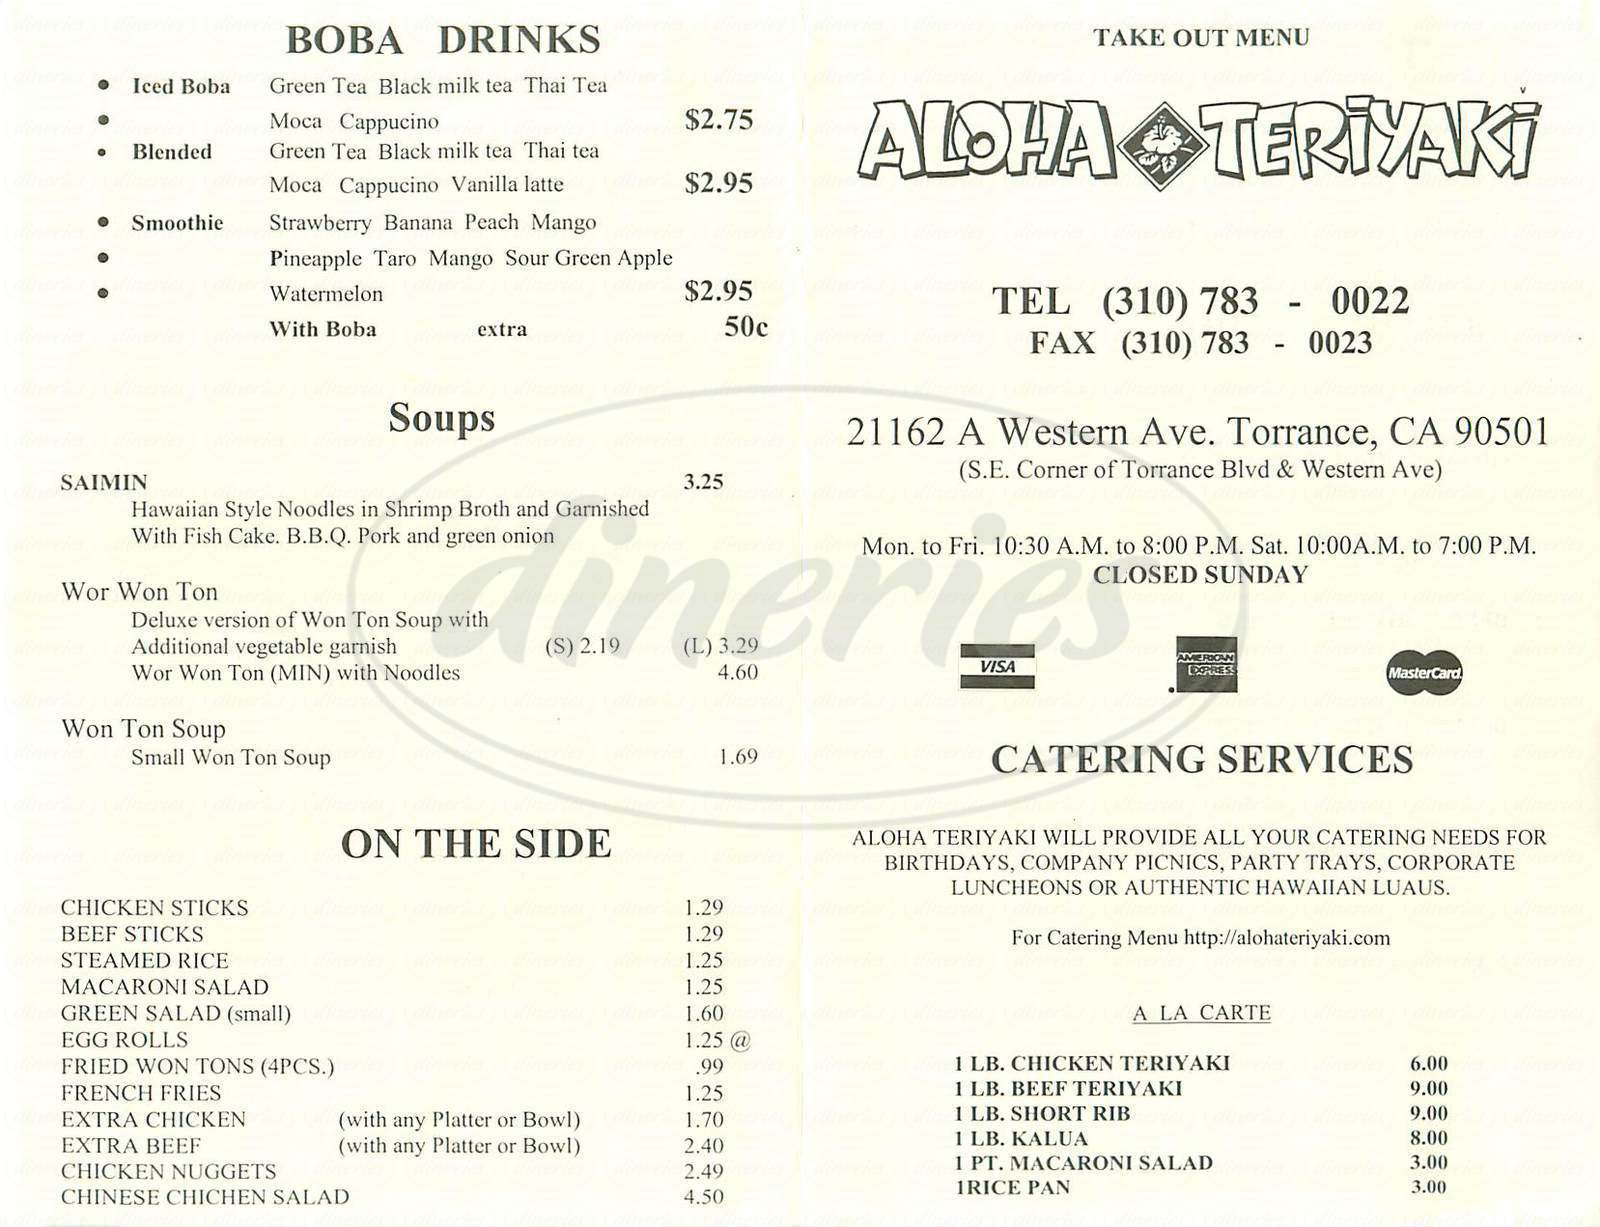 menu for Aloha Teriyaki